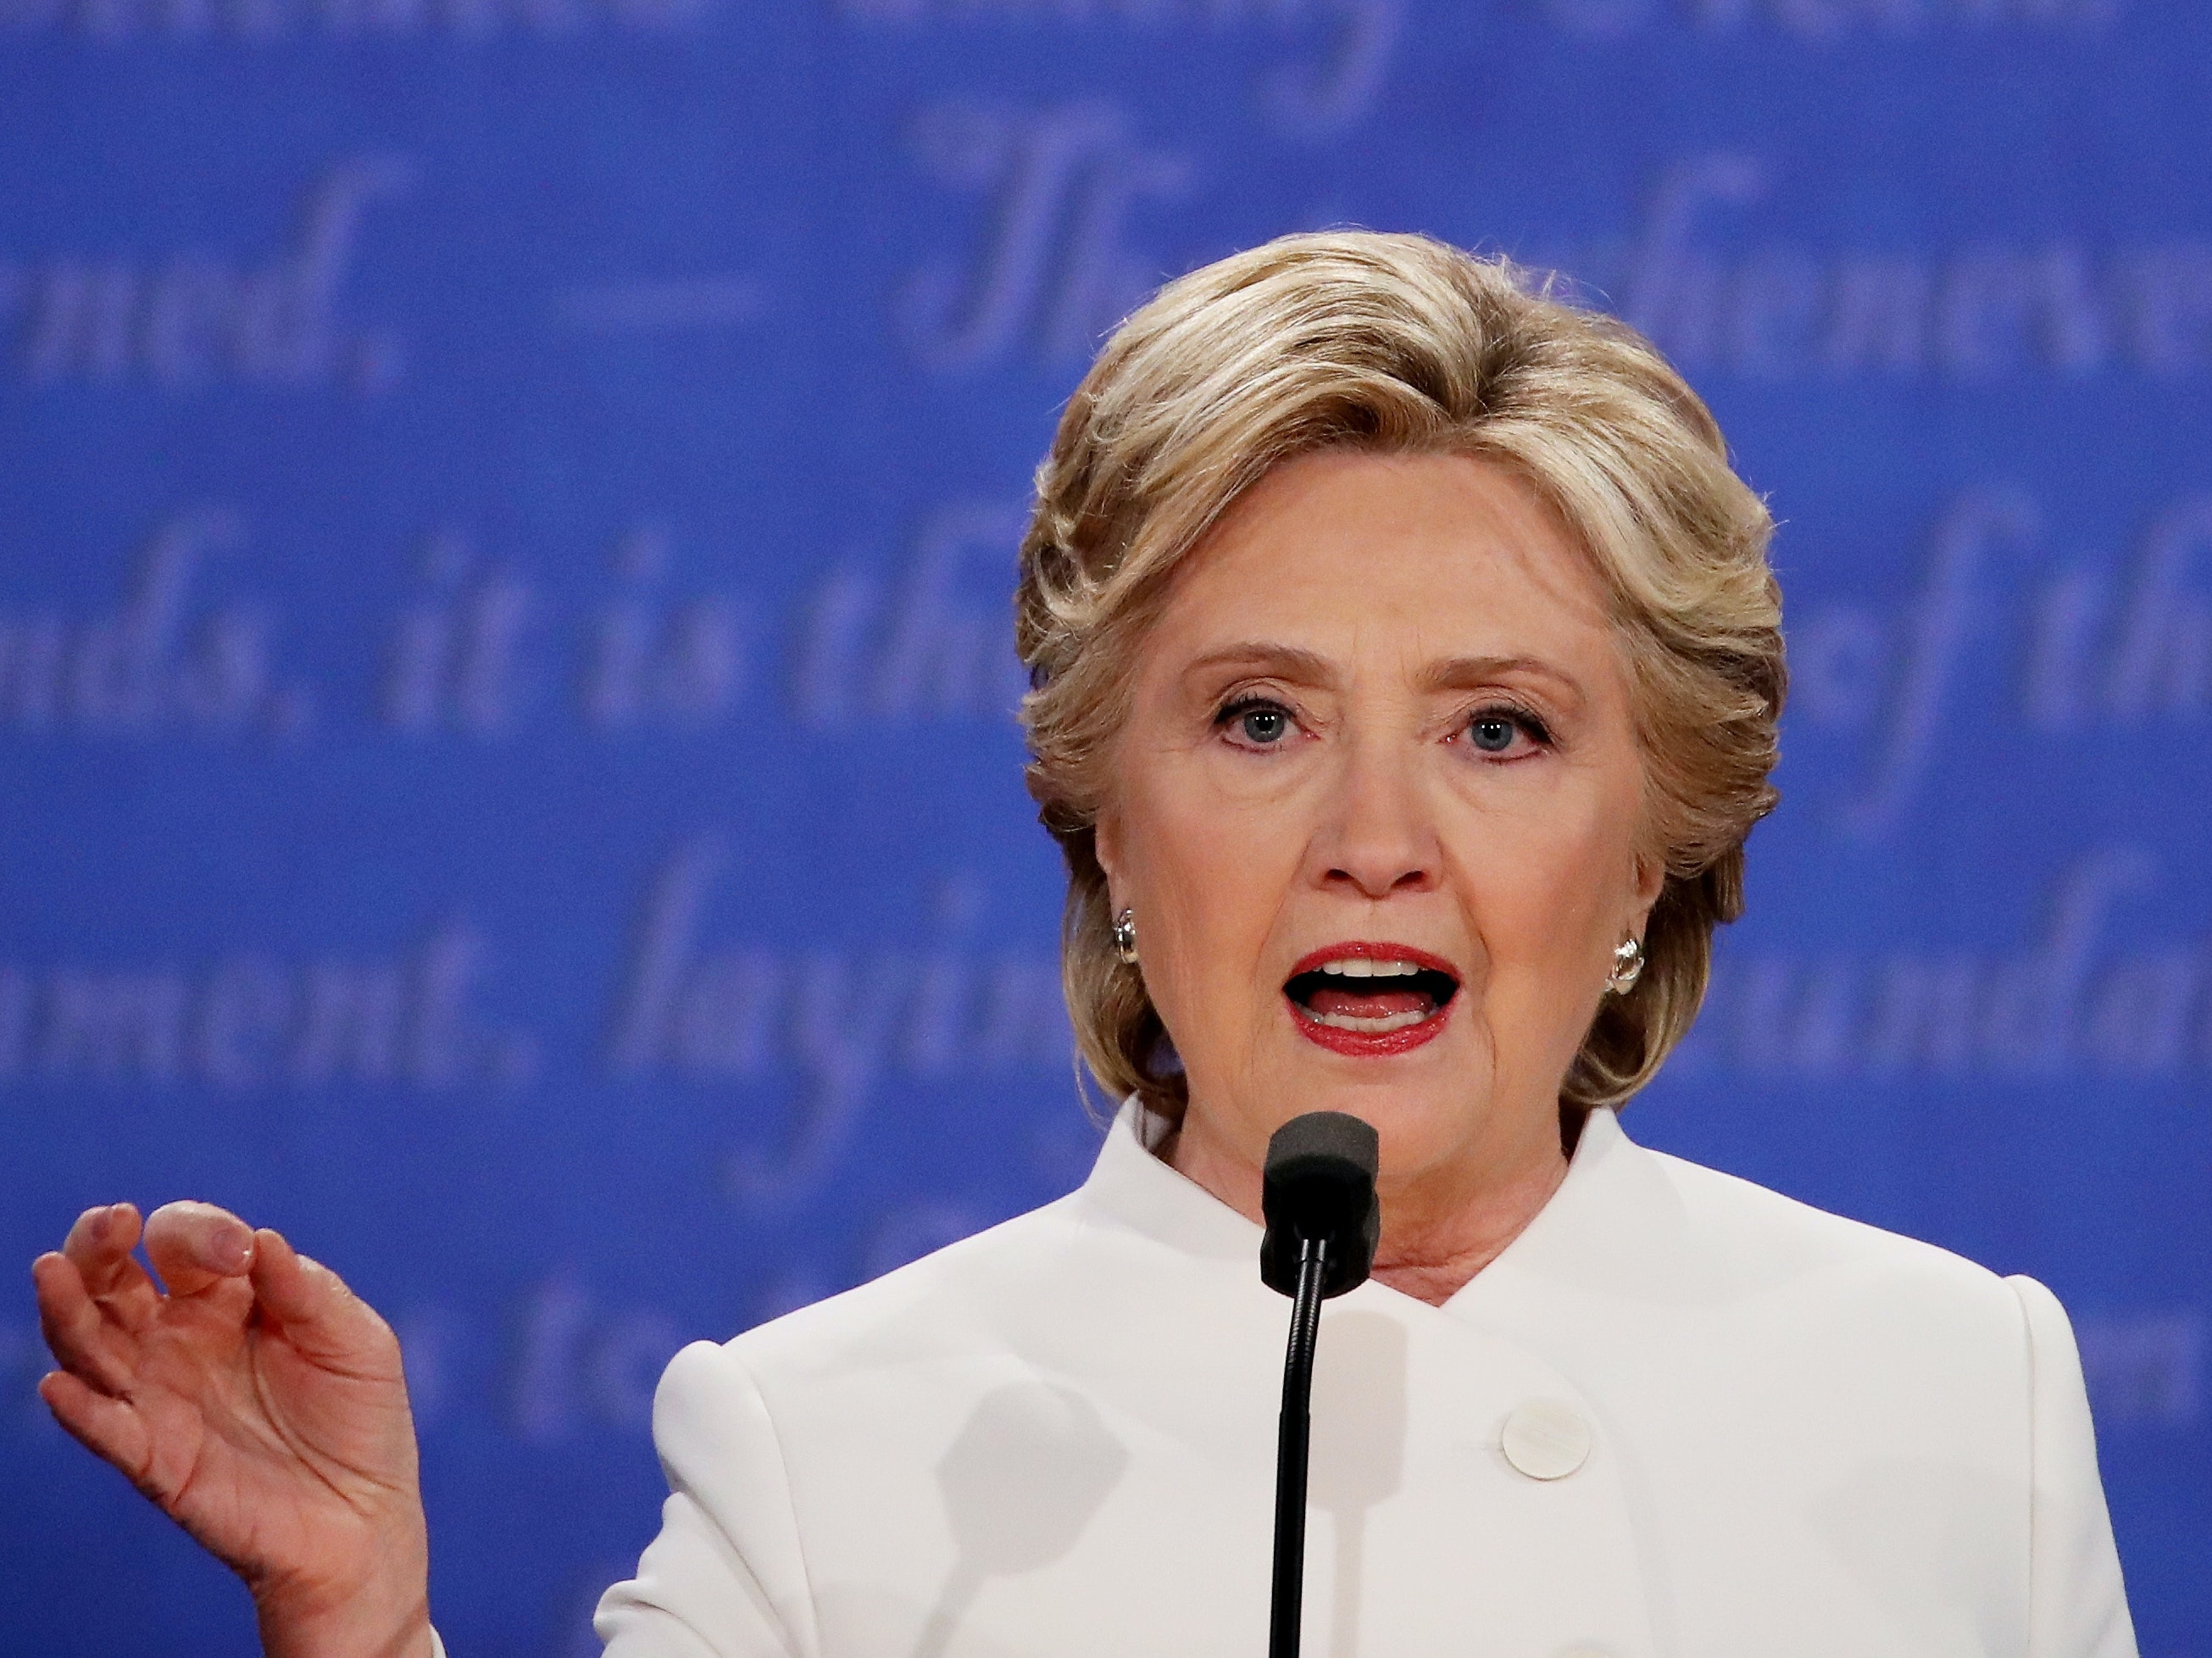 Hillary Clinton during the third presidential debate.